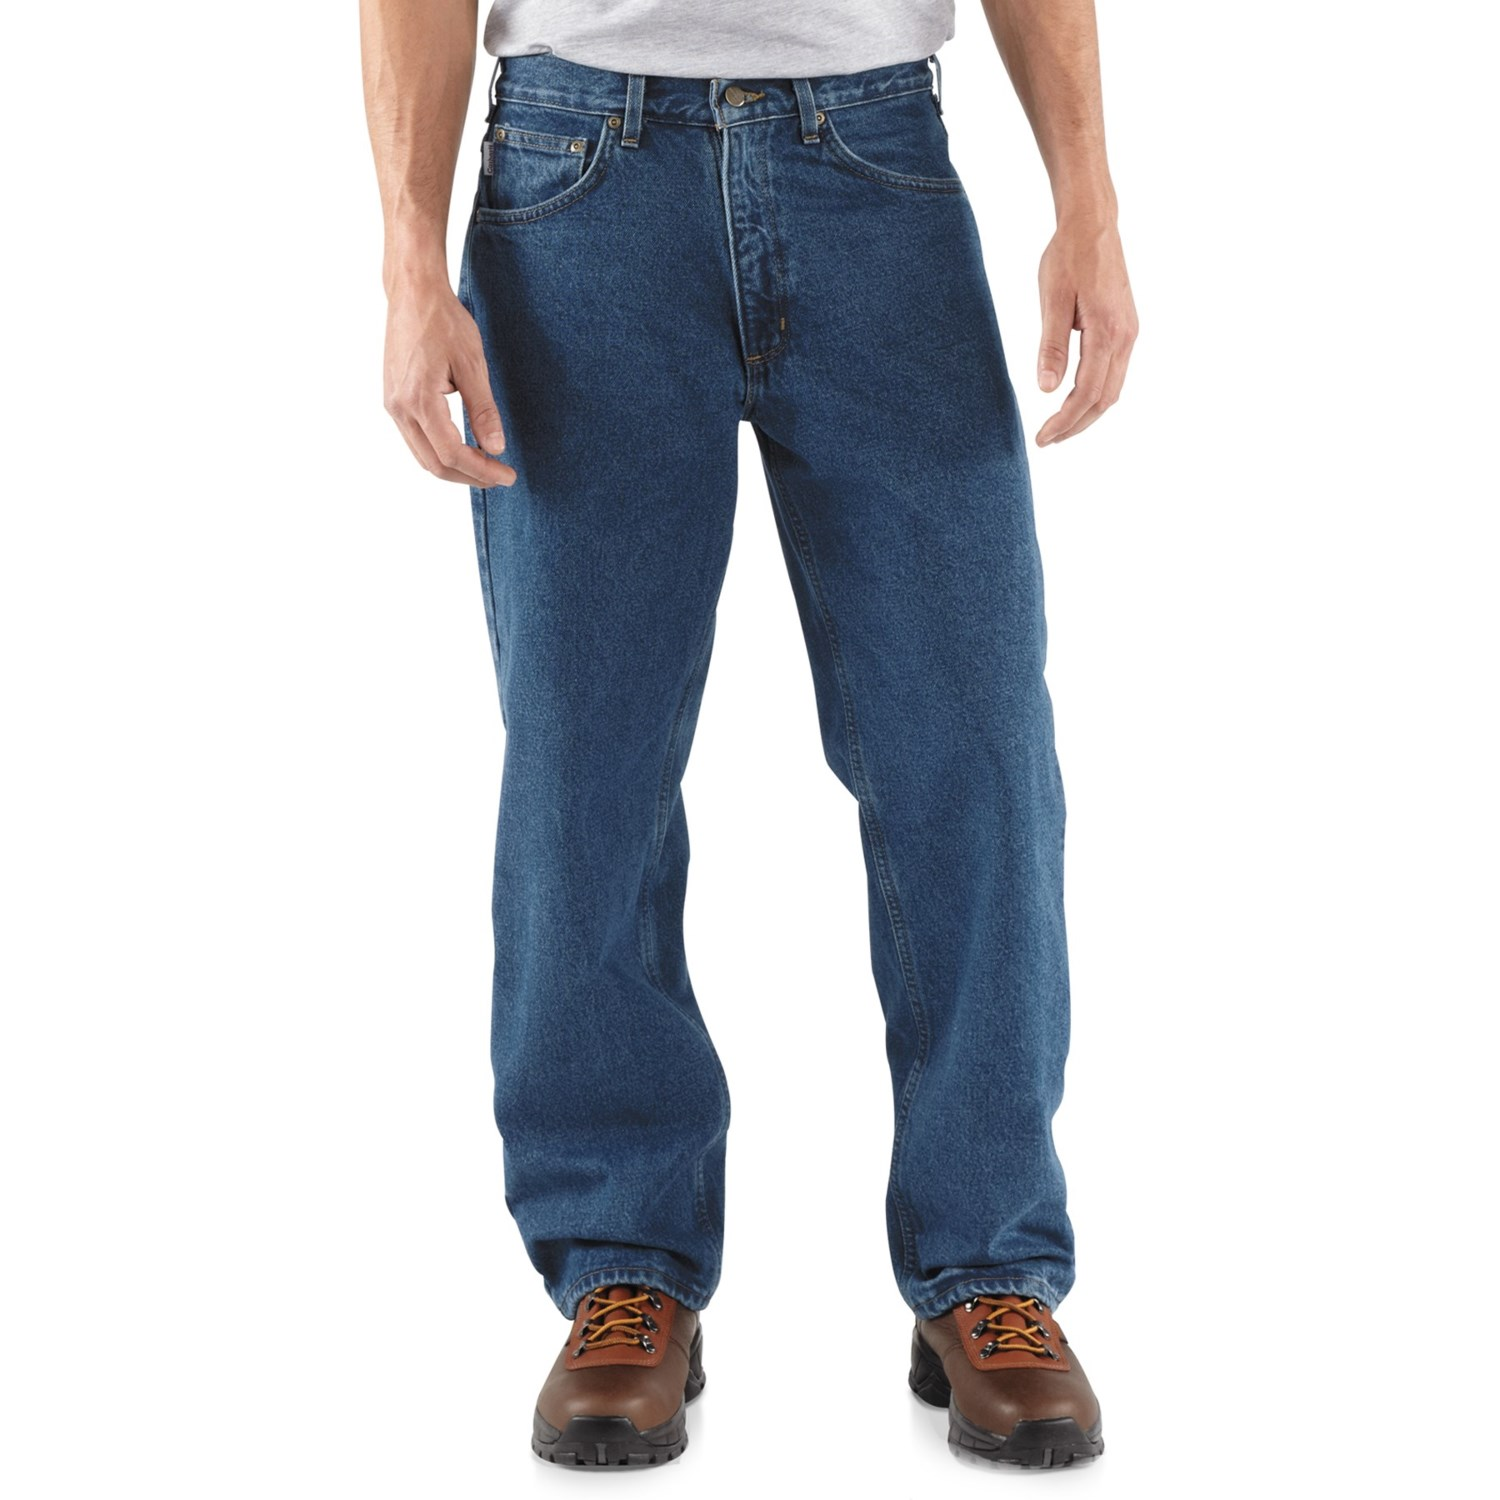 Lined Mens Jeans 94